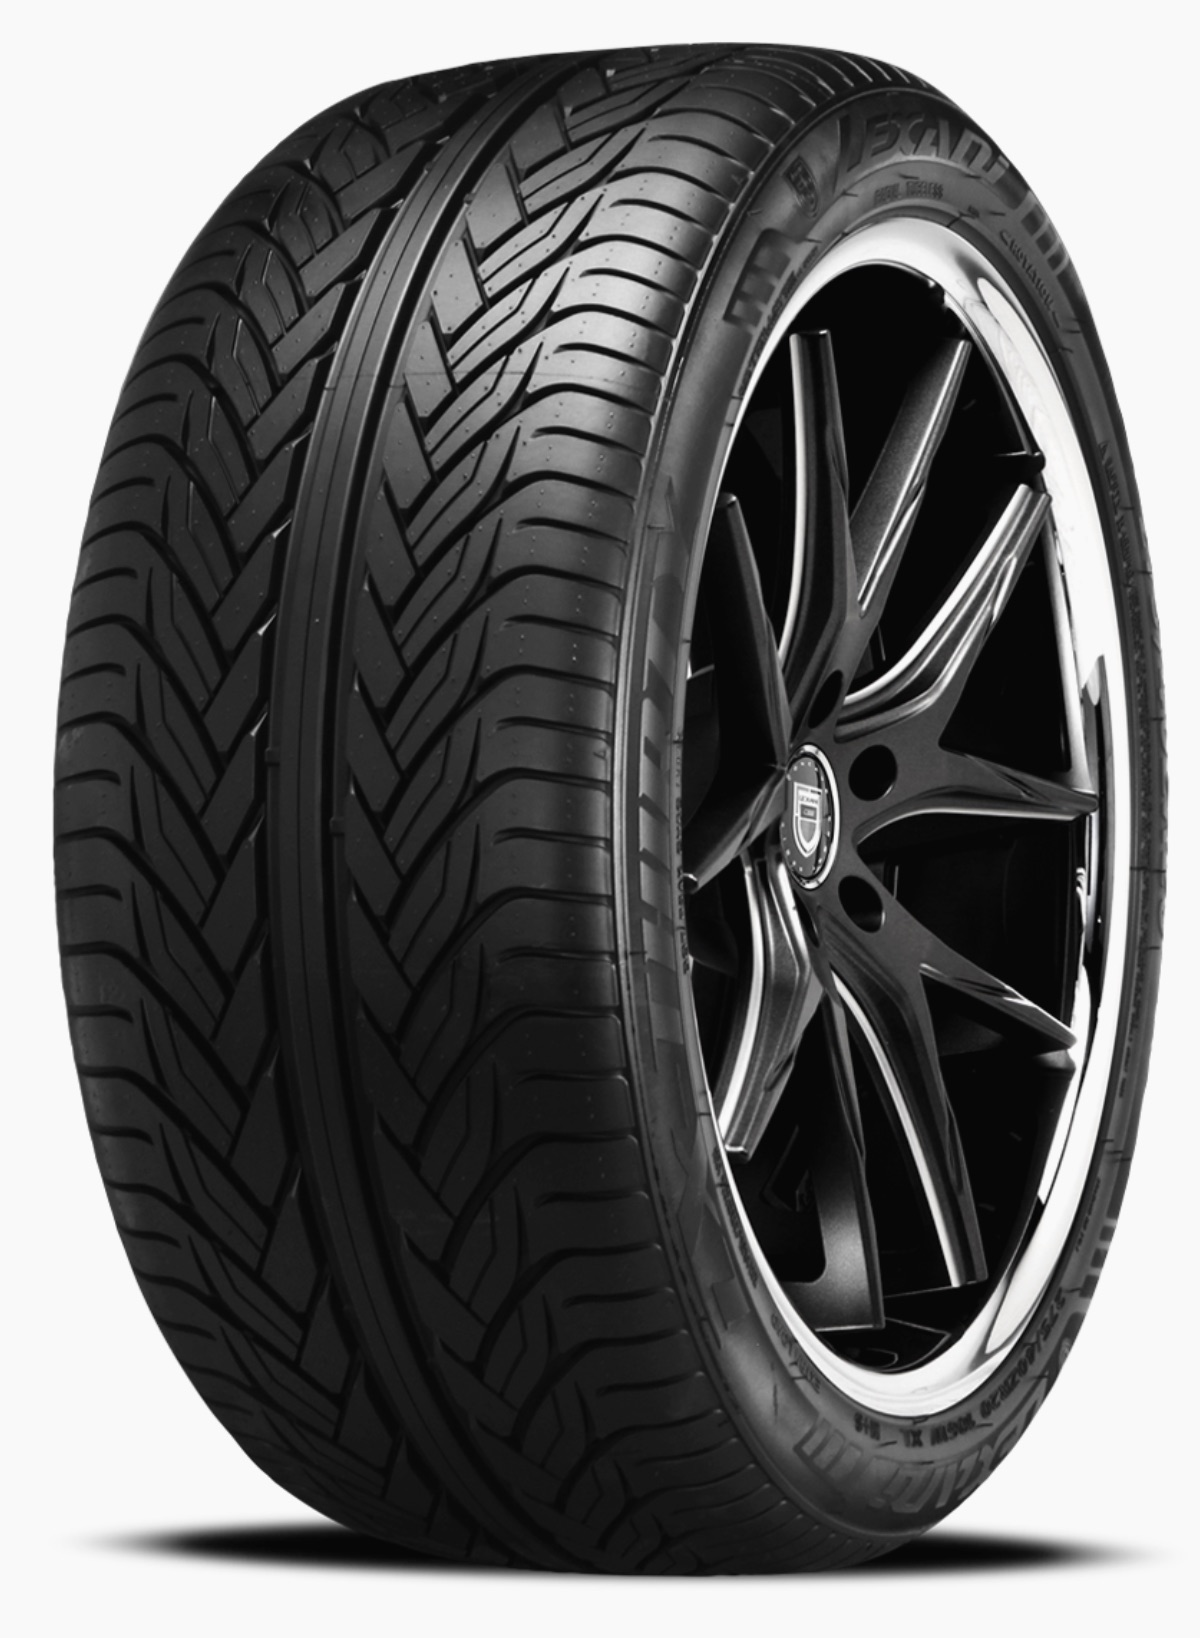 LX THIRTY (325/35 R28 – Directional)